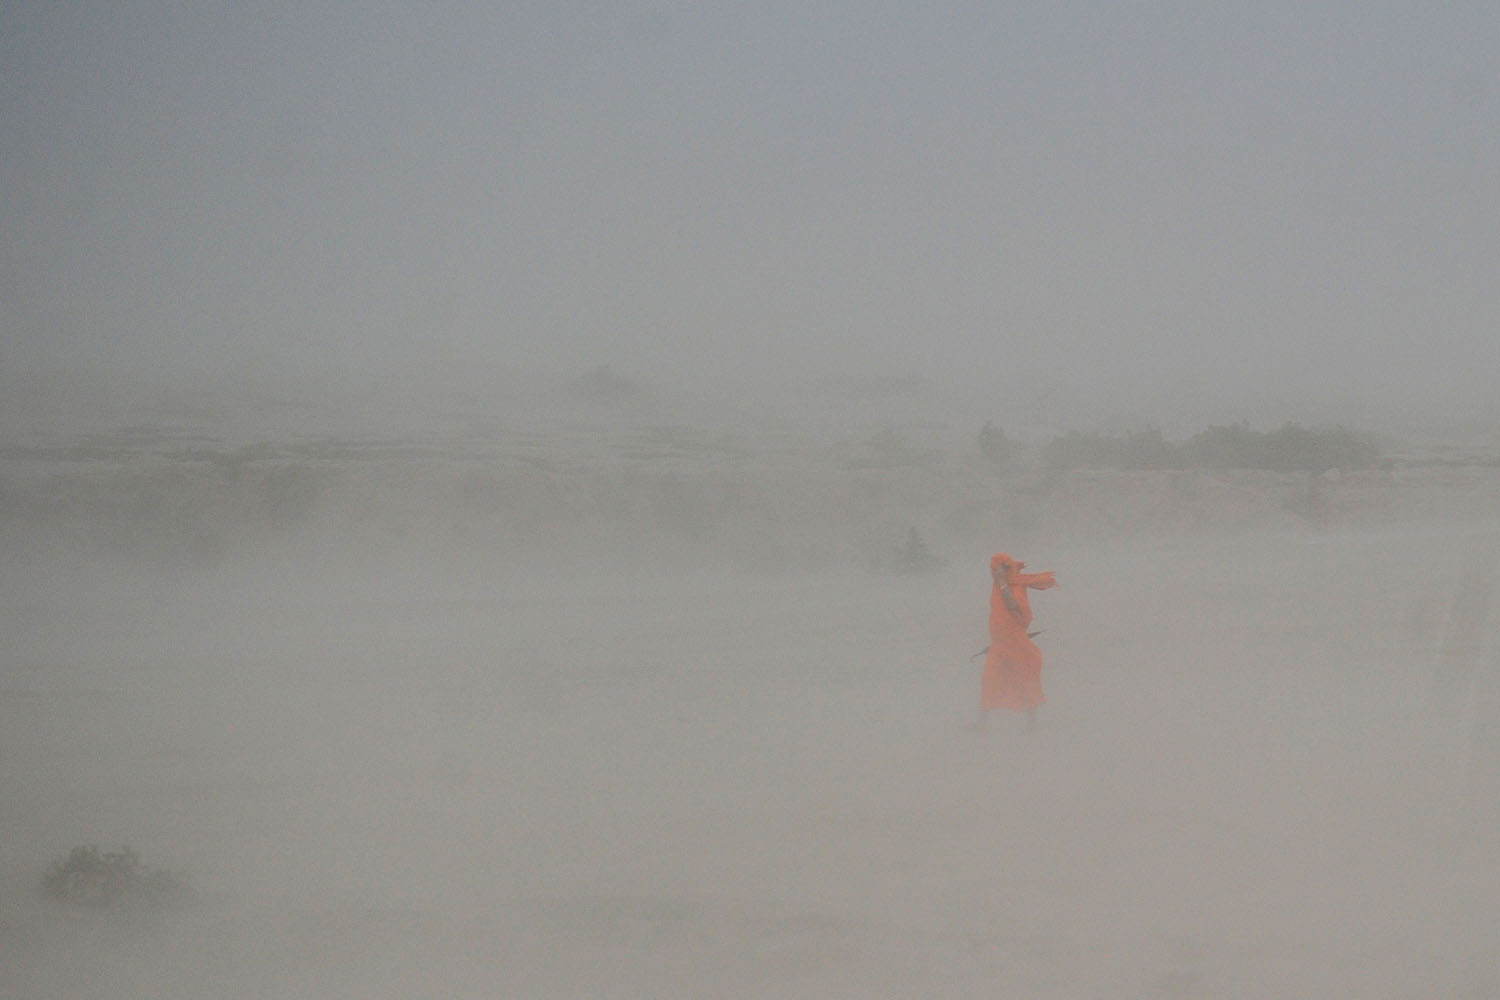 Jun. 23, 2014. An Indian Hindu sadhu (holy man) walks through a dust storm at the Sangam, the confluence of the rivers Ganges, Yamuna and mythical Saraswati, in Allahabad.